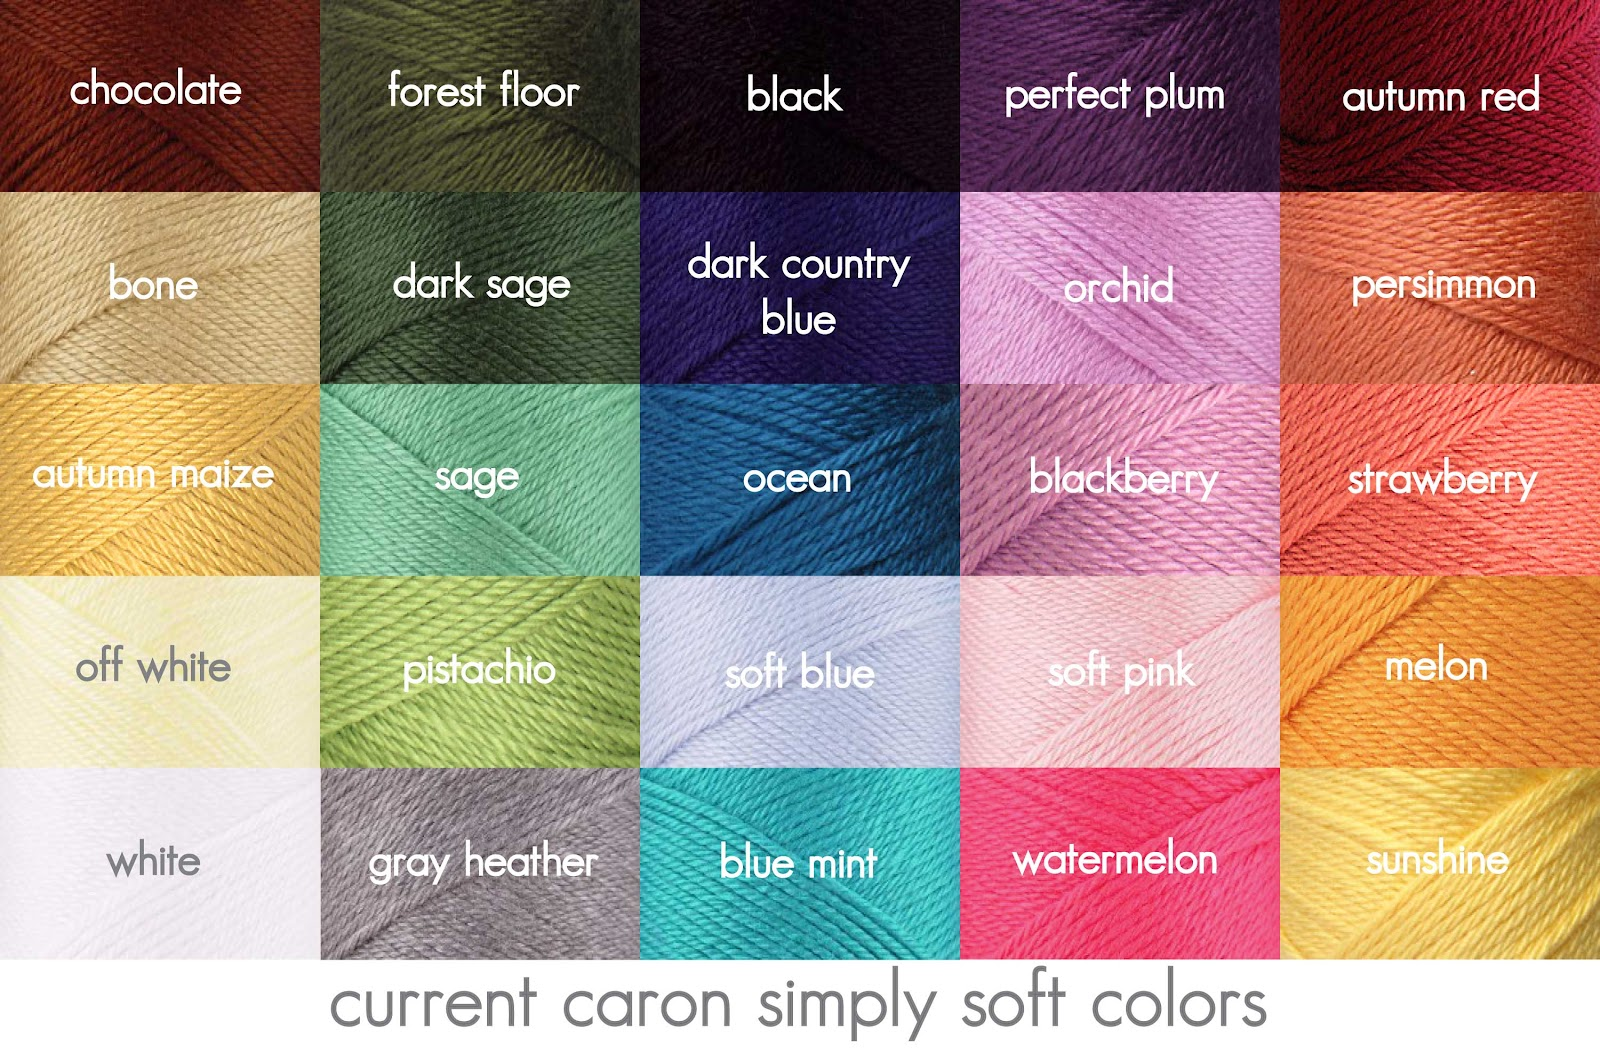 Red Heart Yarn Colors Reproducibility...